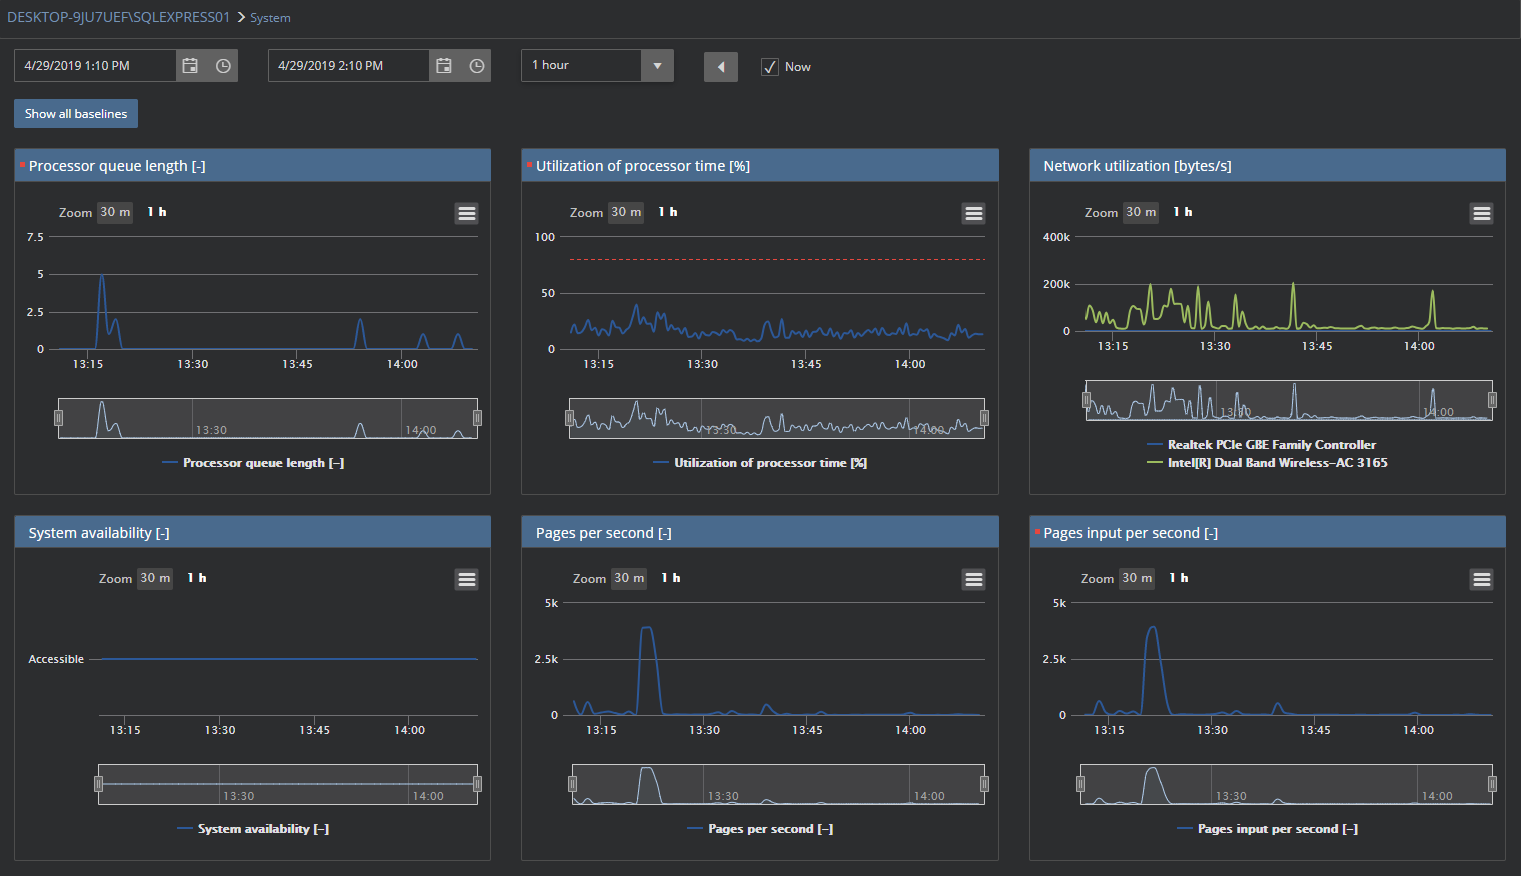 Monitoring of various system metrics page